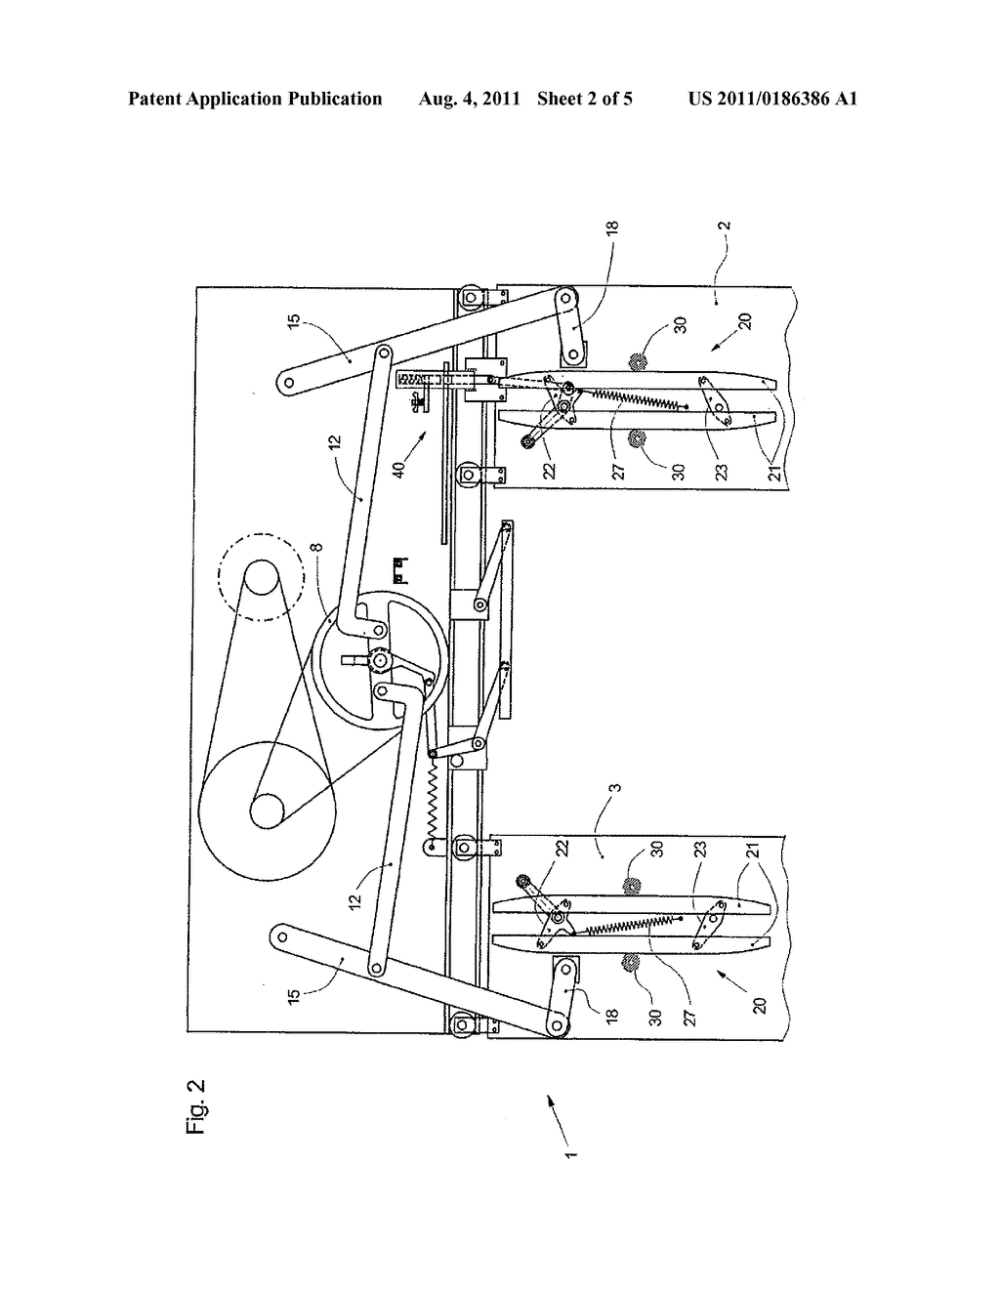 medium resolution of elevator door system comprising a car door locking mechanism diagram schematic and image 03